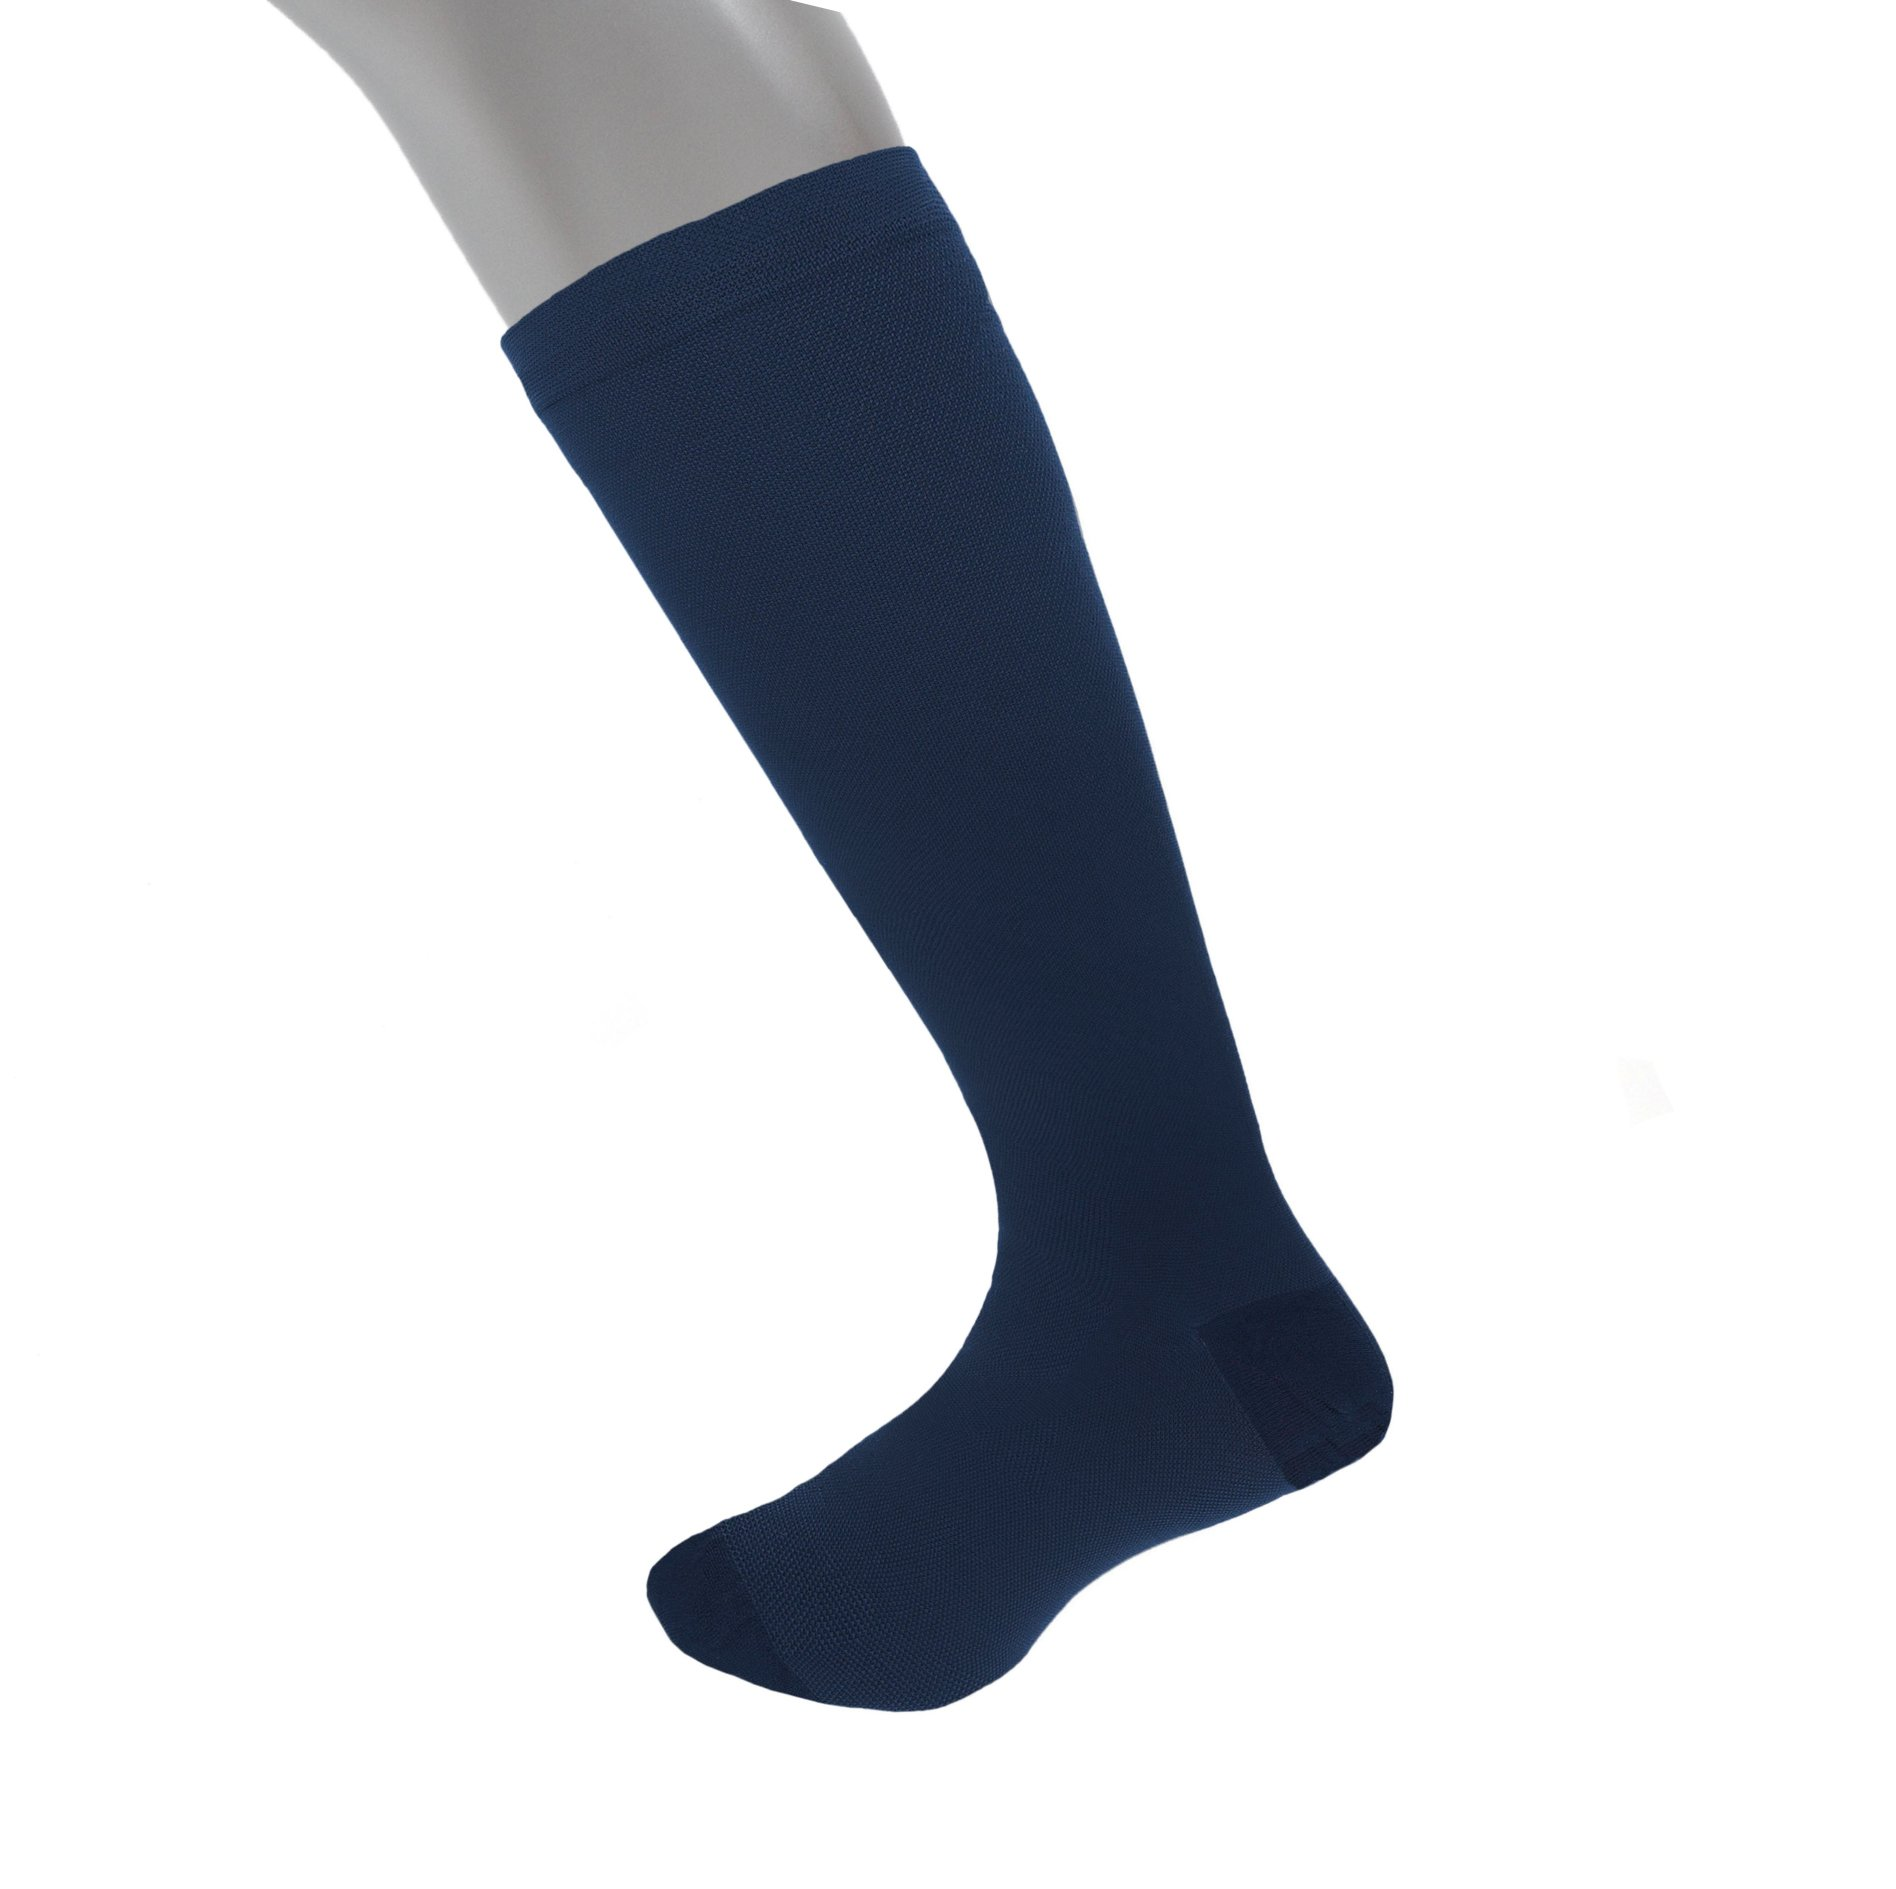 Compression Socks | Mens Navy Dress Casual (1 pair) | (15-20 mmHg) Graduated | Sock Size 10-13 | Improve Foot Health Comfort Circulation for Diabetes, Edema, Flight Travel, Swollen Feet